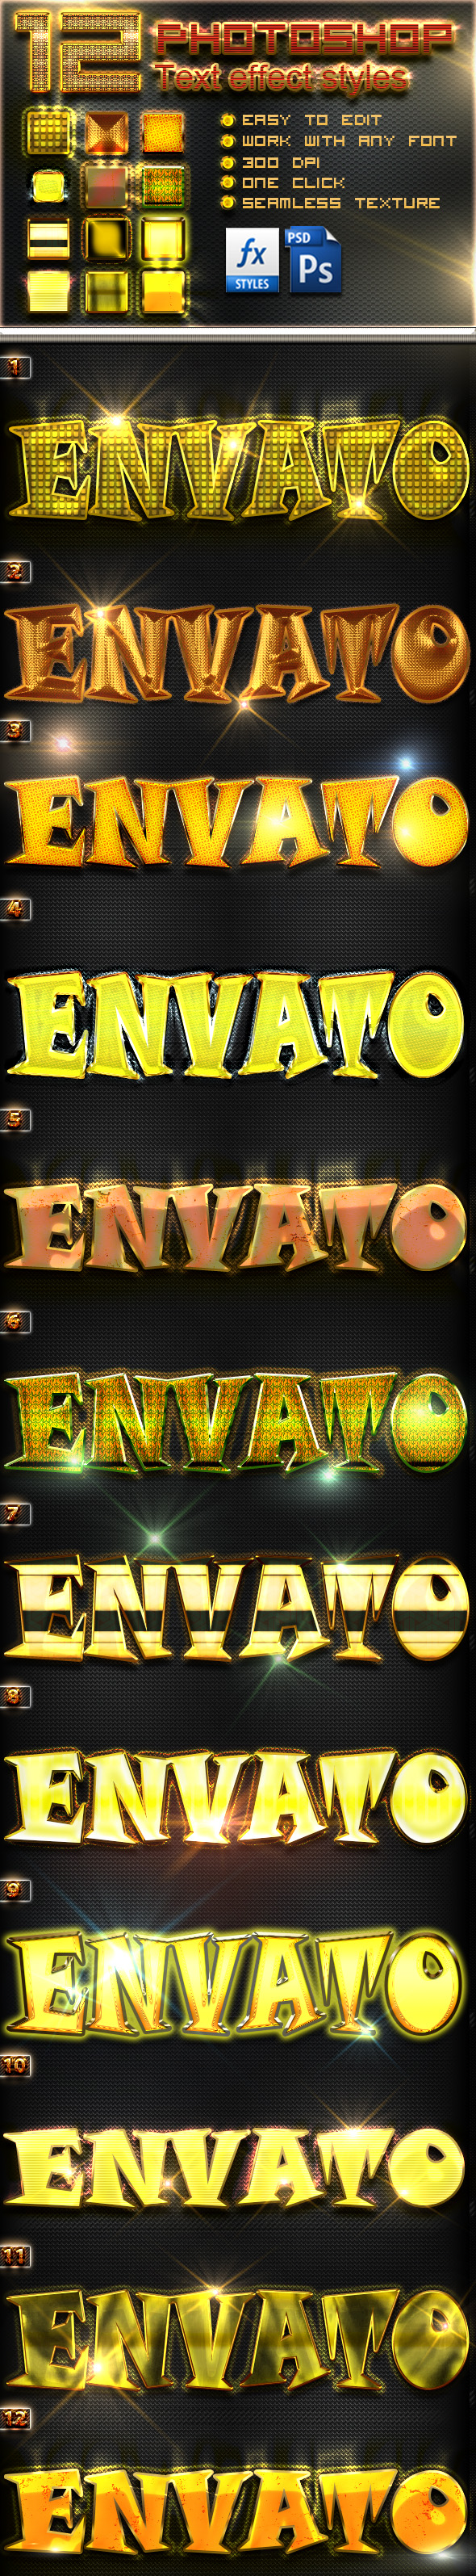 12 Photoshop Gold Text Effect Styles Vol 18 - Text Effects Styles